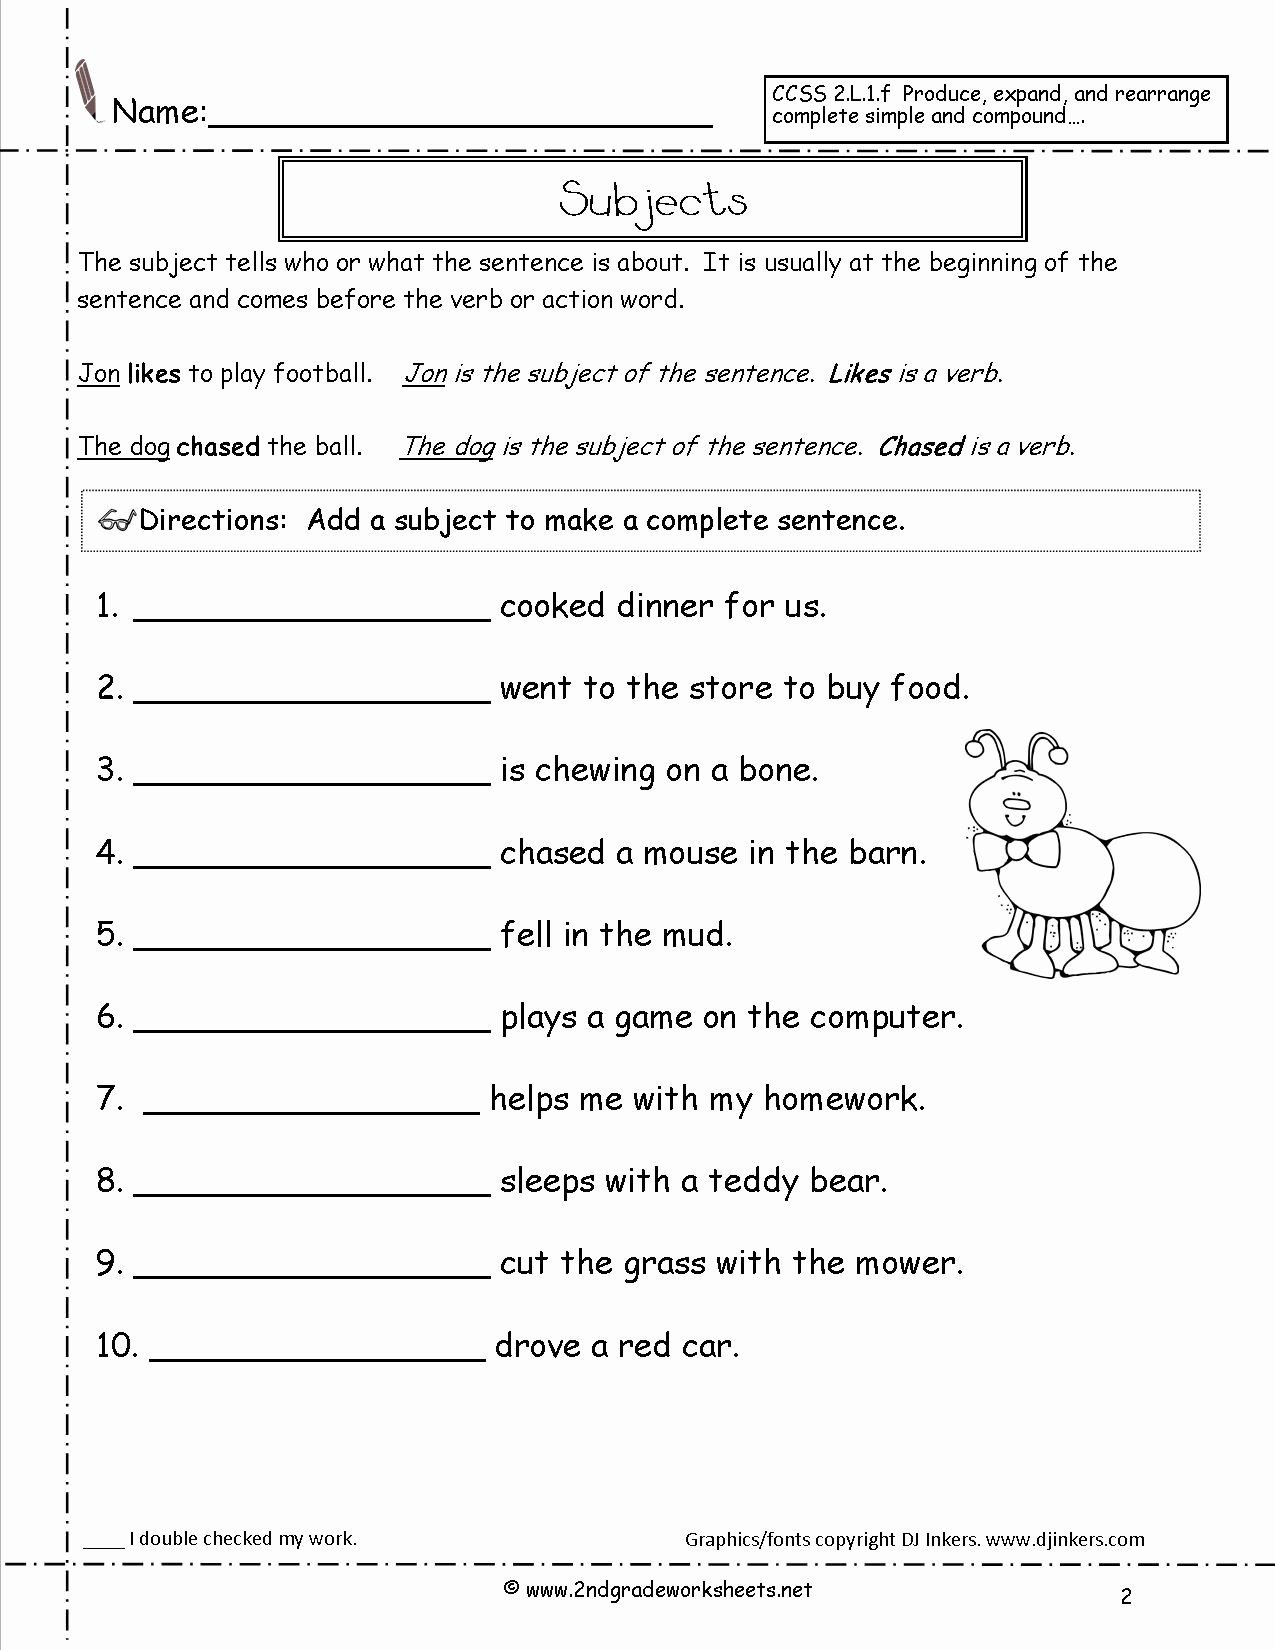 Types Of Sentences Worksheet Unique Sentences Worksheets From the Teacher S Guide